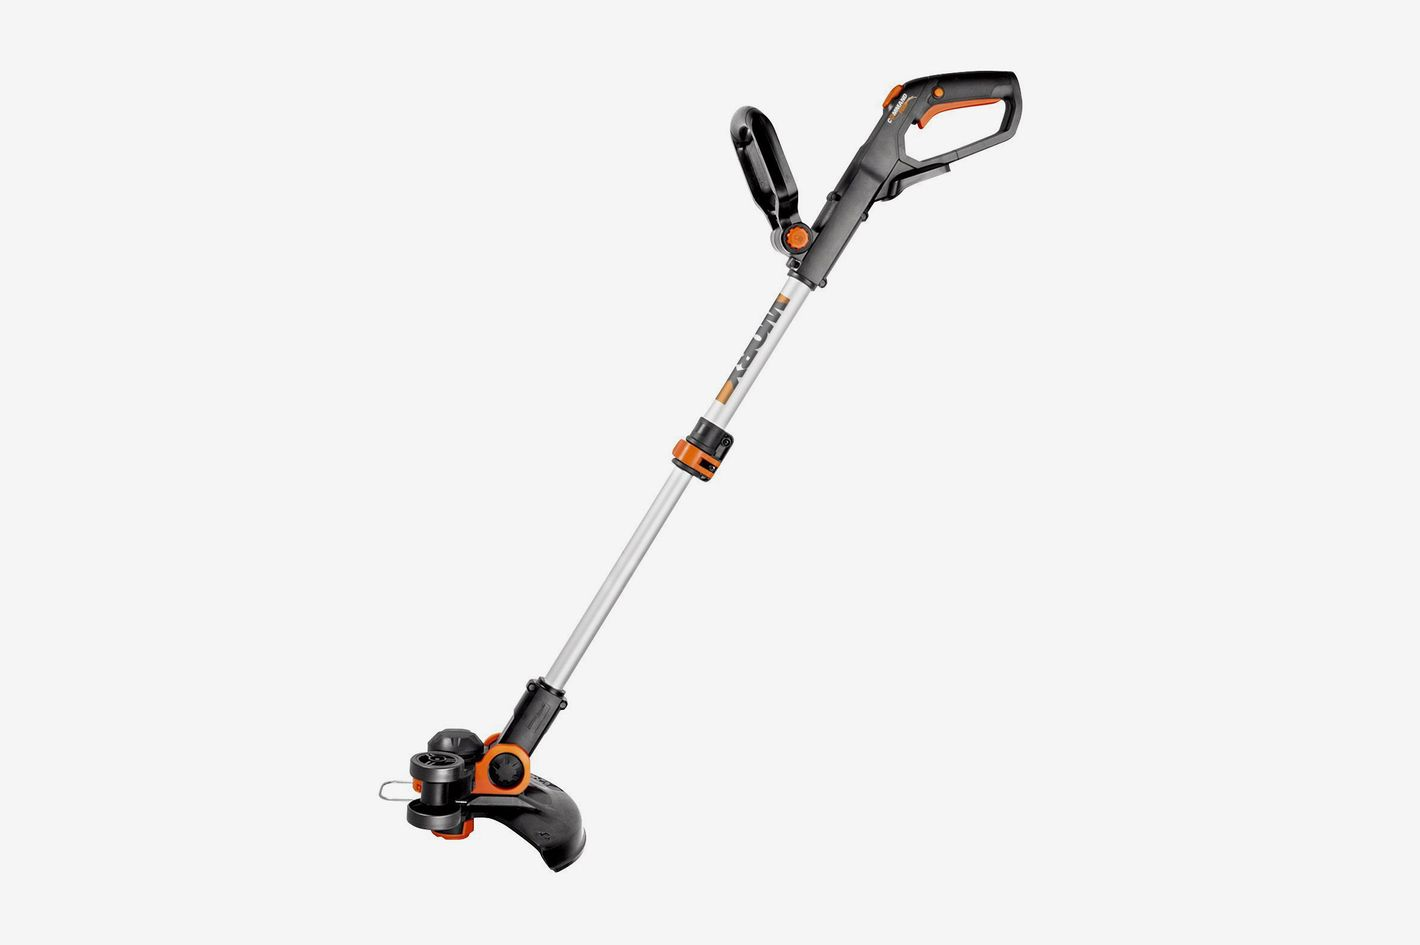 """Worx WG163 GT 3.0 20V Cordless Grass Trimmer/Edger With Command Feed 12"""""""